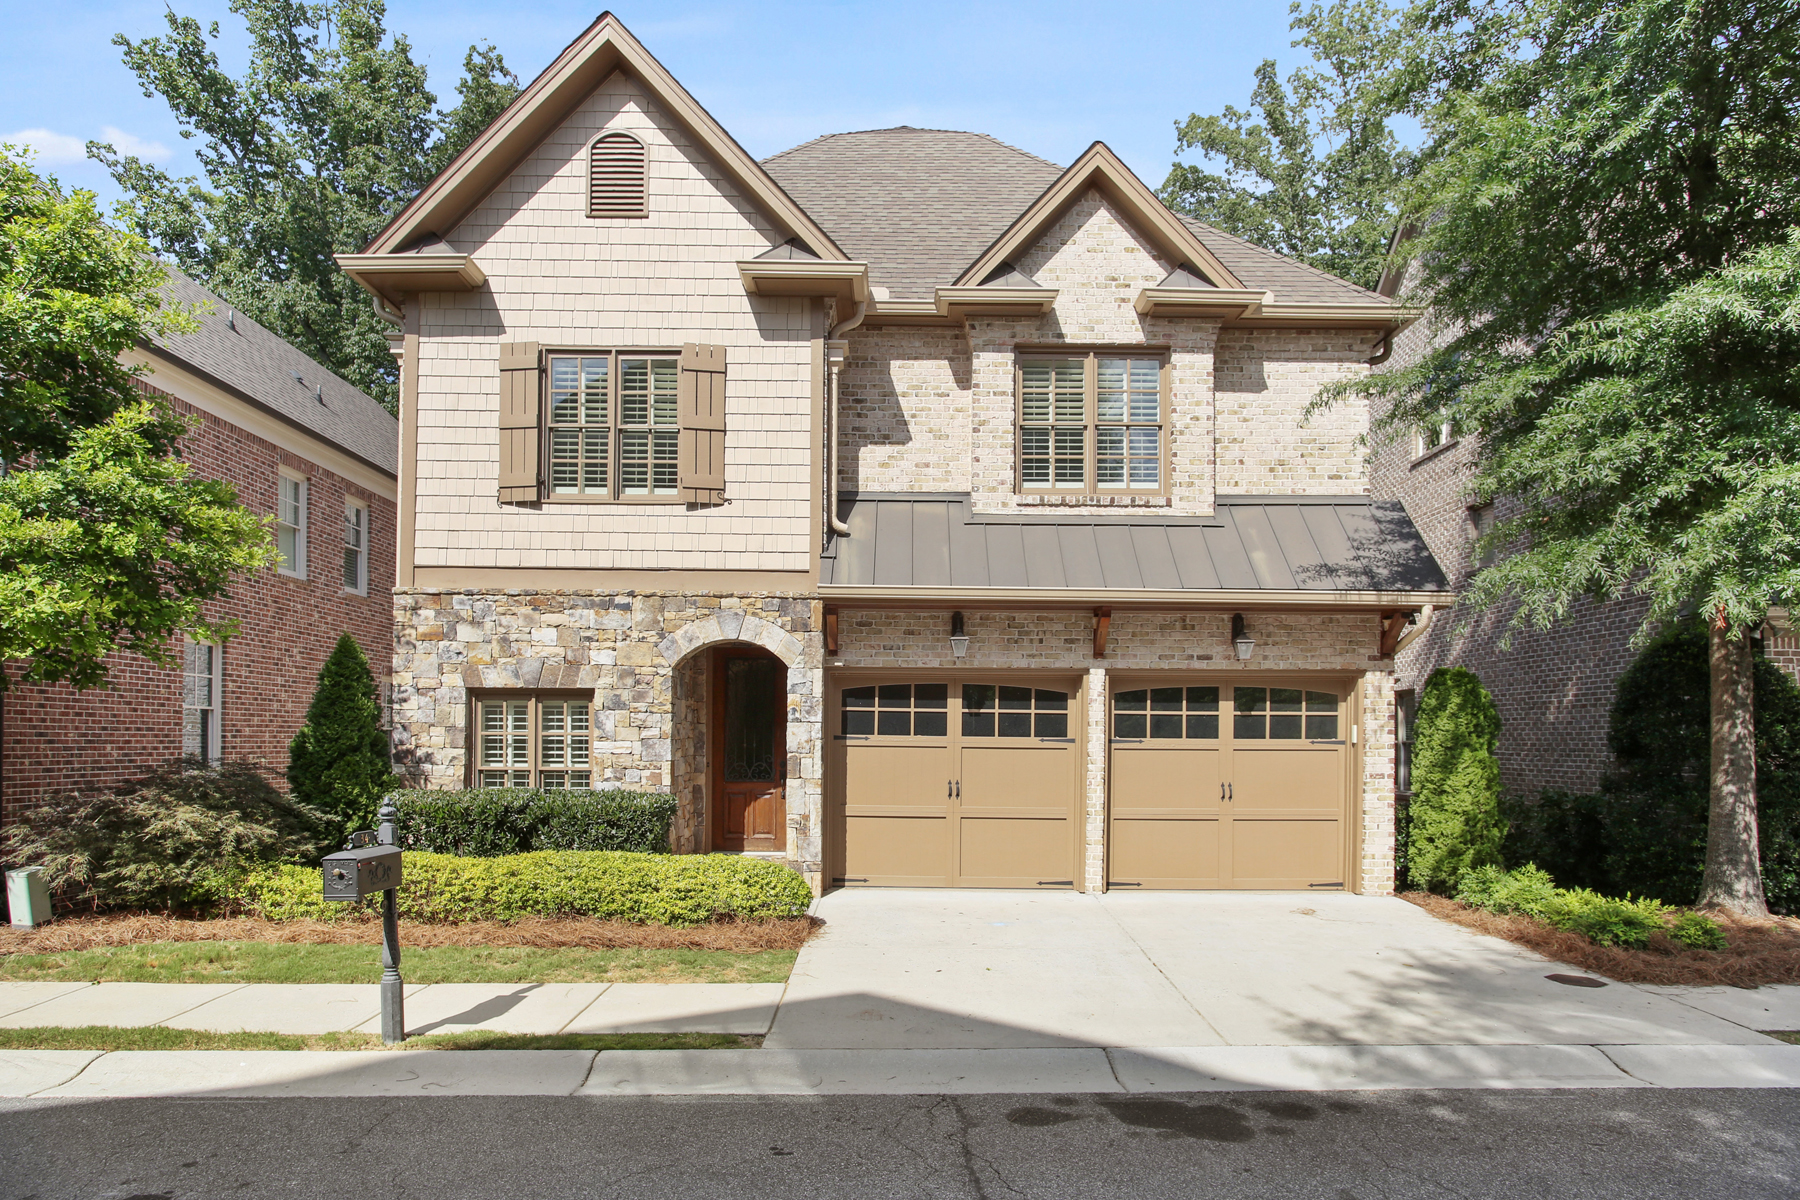 Property のために 売買 アット Impeccable Custom Home In The Heart of Sandy Springs 34 High Top Circle, Sandy Springs, ジョージア 30328 アメリカ